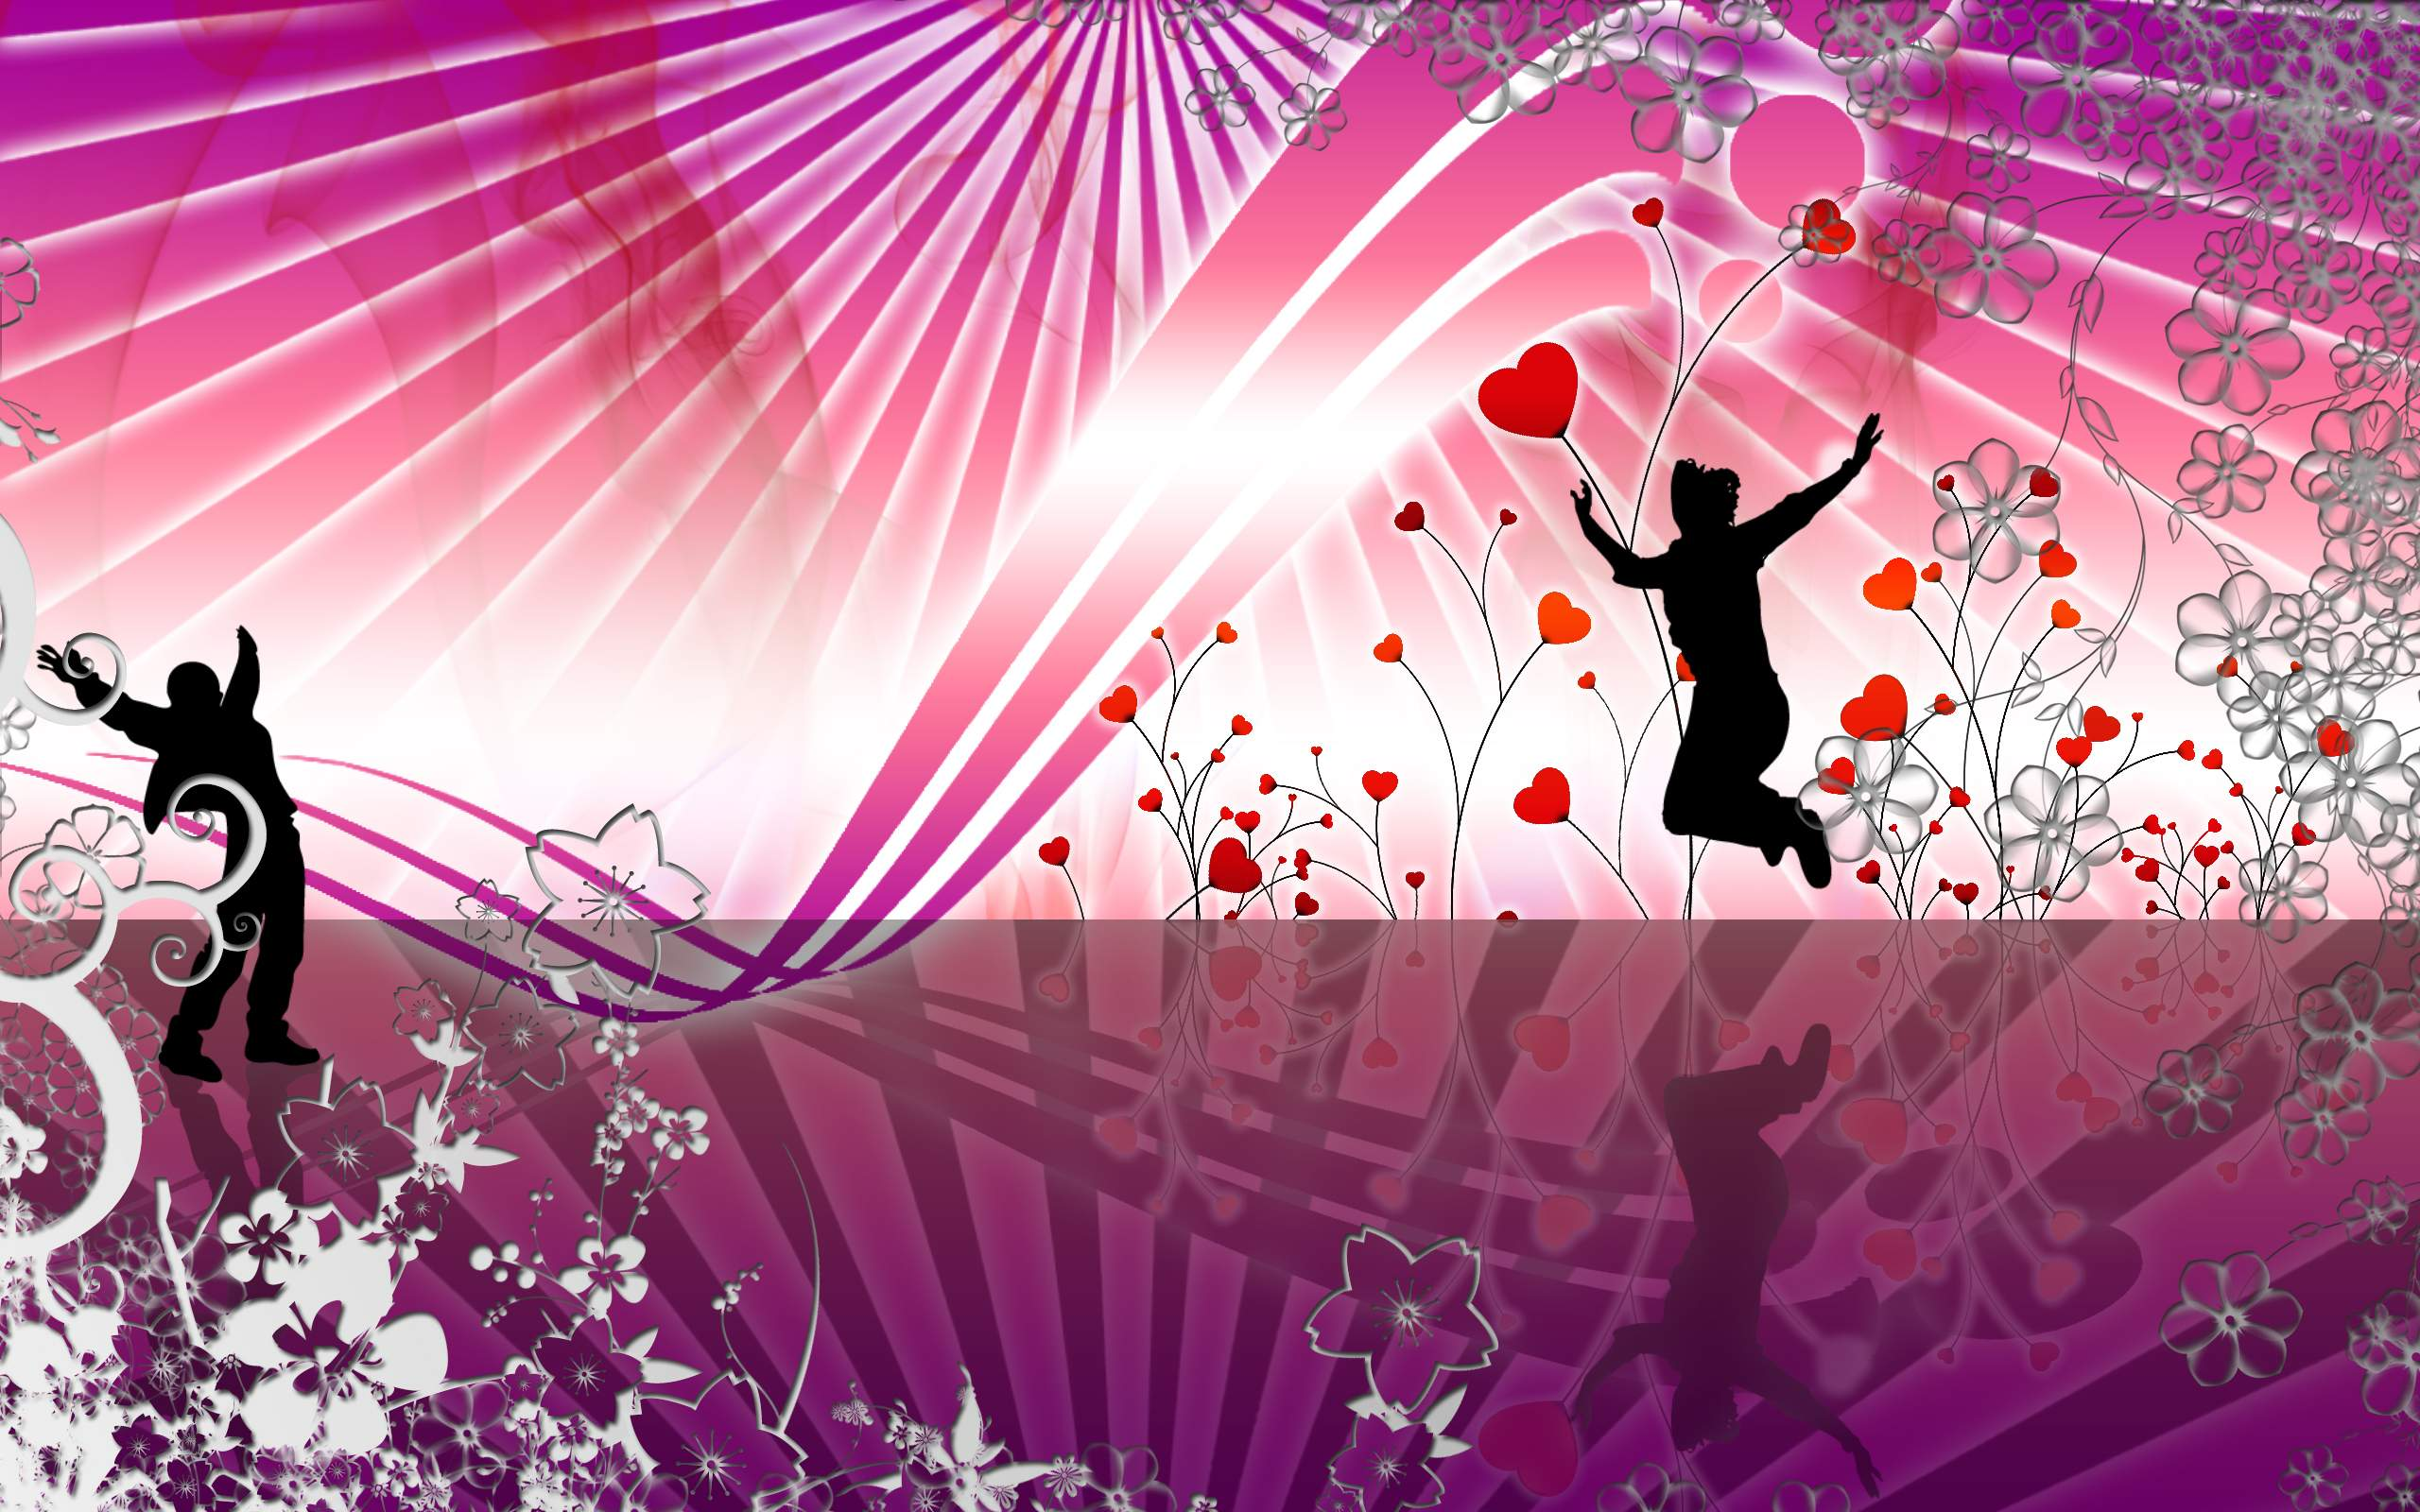 Dance Backgrounds Image - Wallpaper Cave